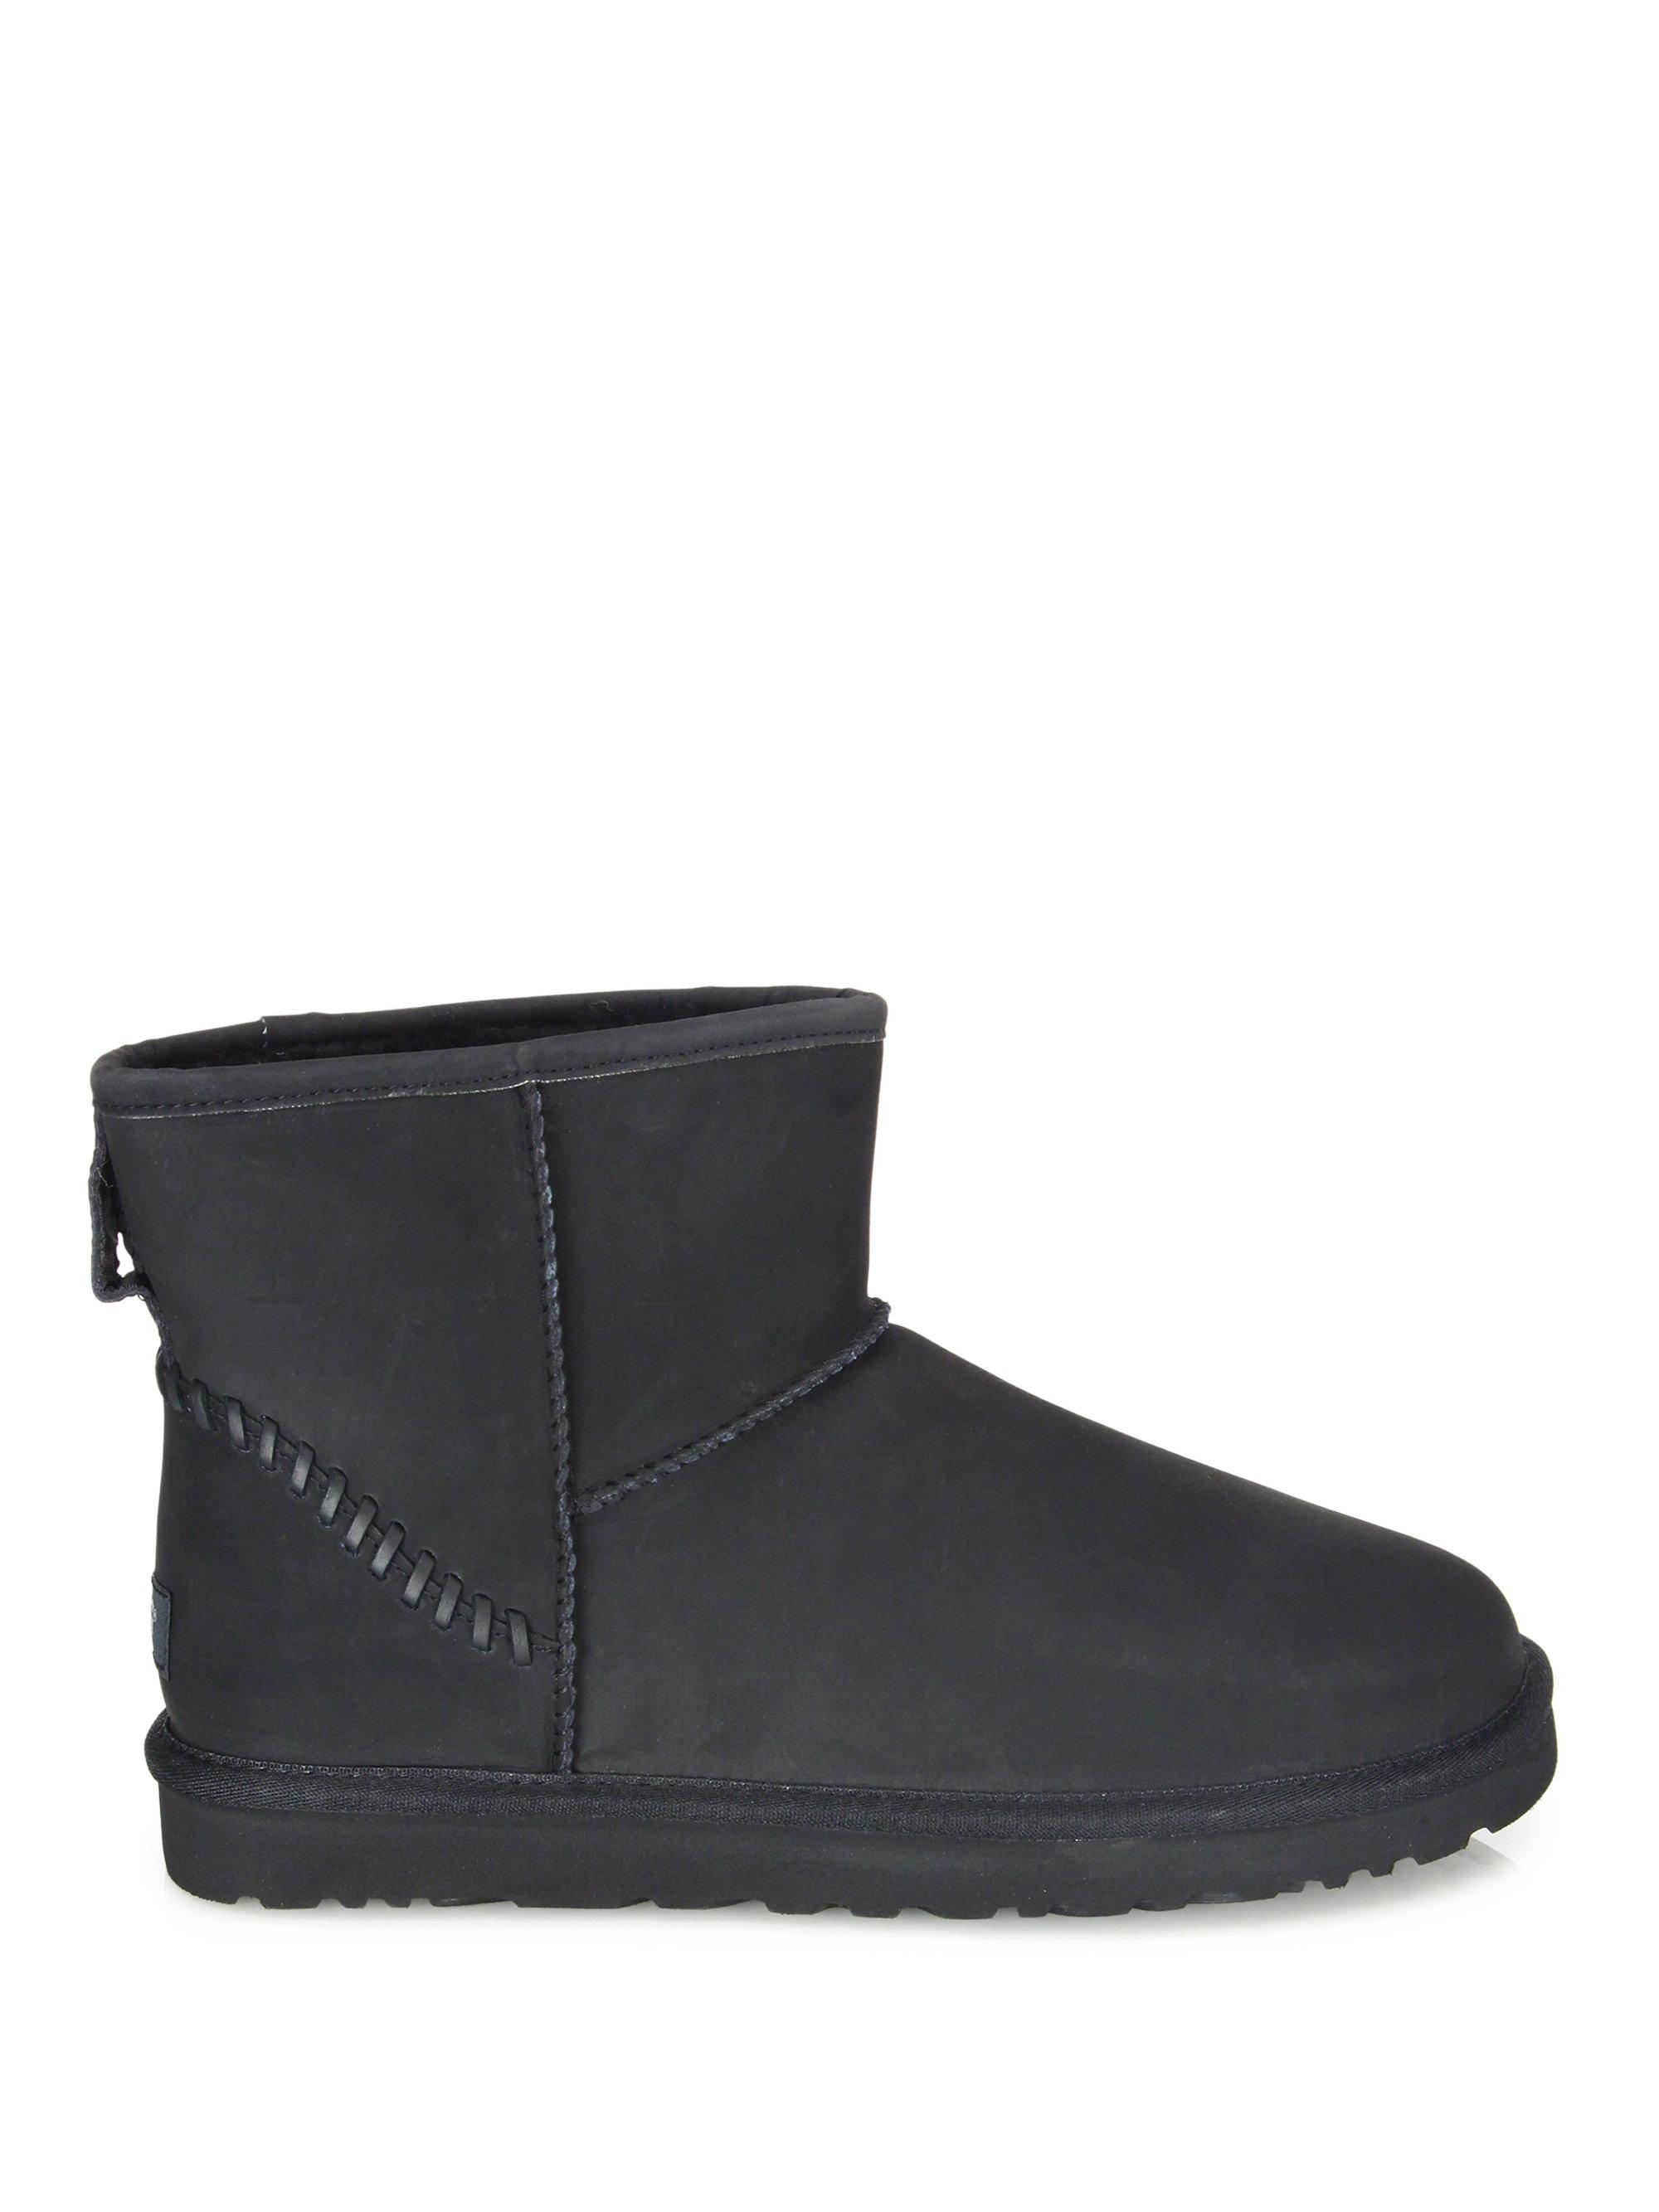 ugg classic mini deco leather boots in black lyst